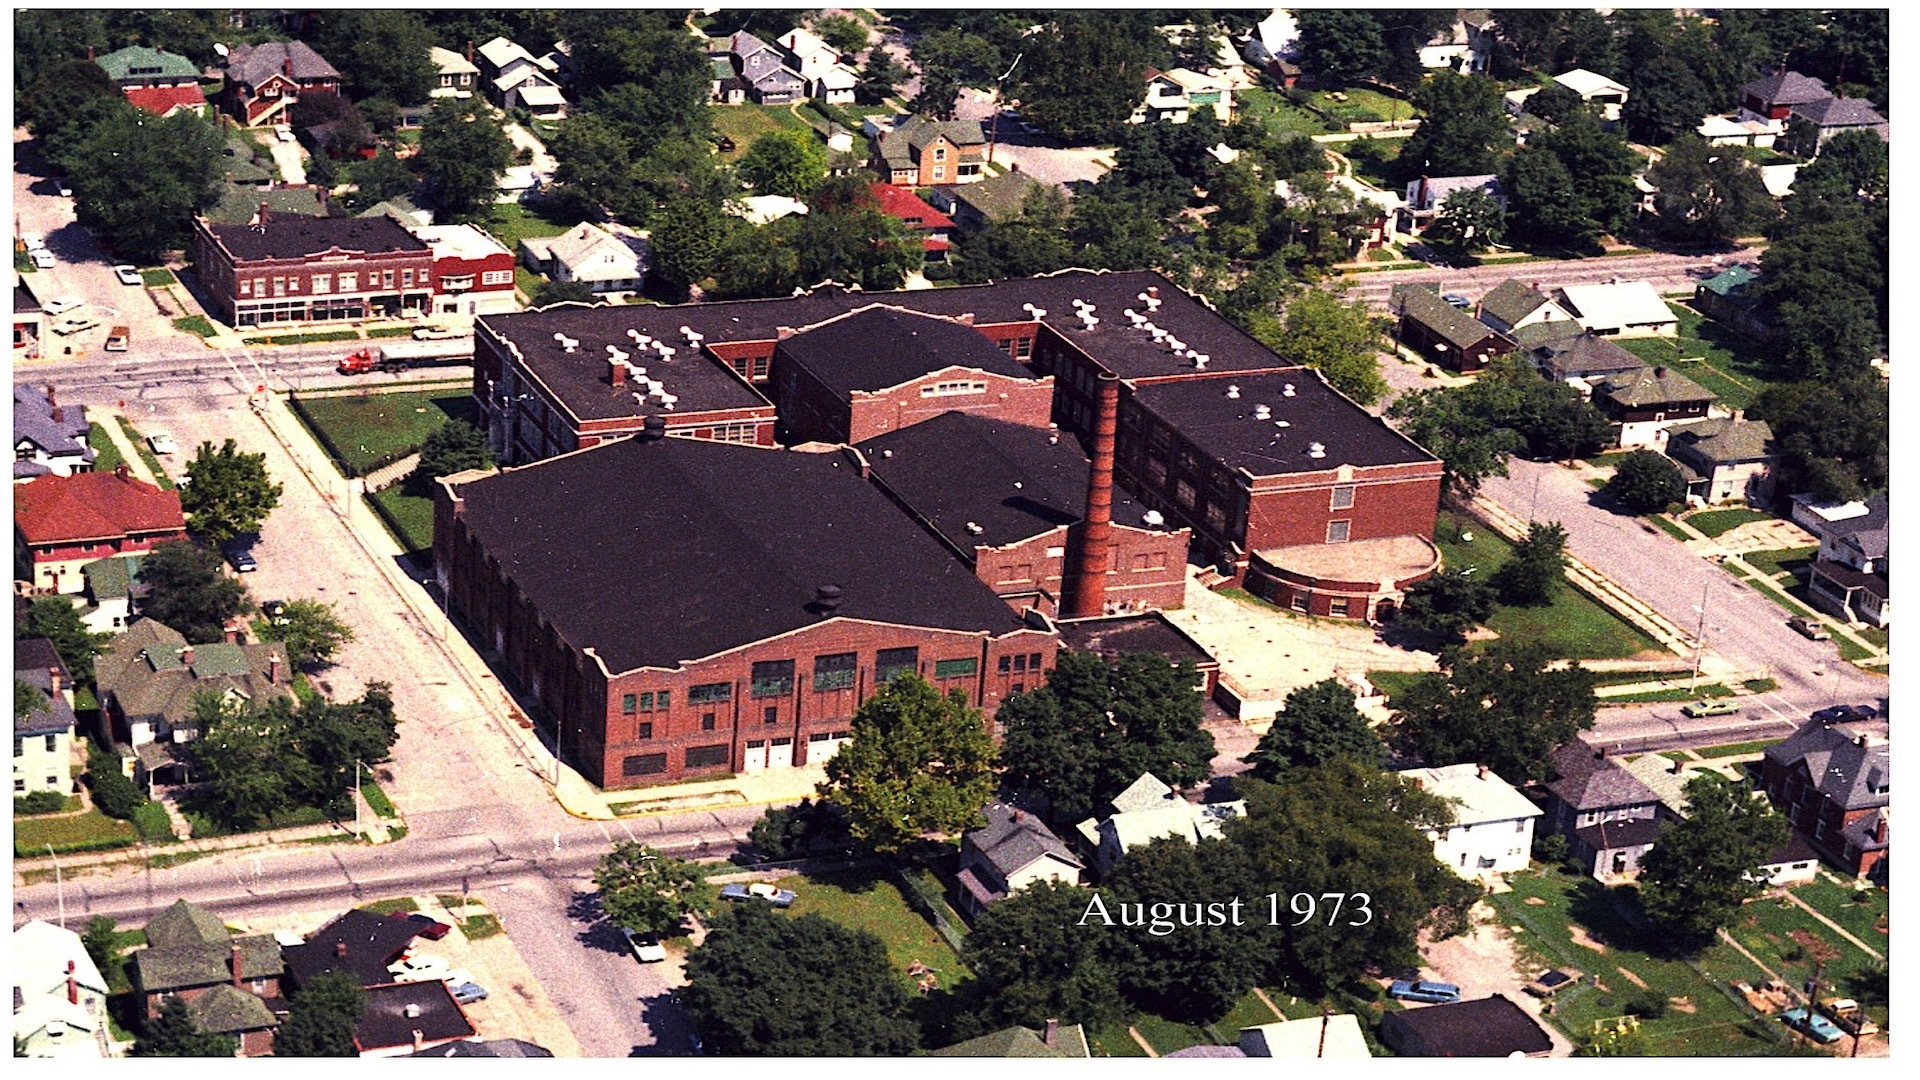 Photo of LHS from August, 1973